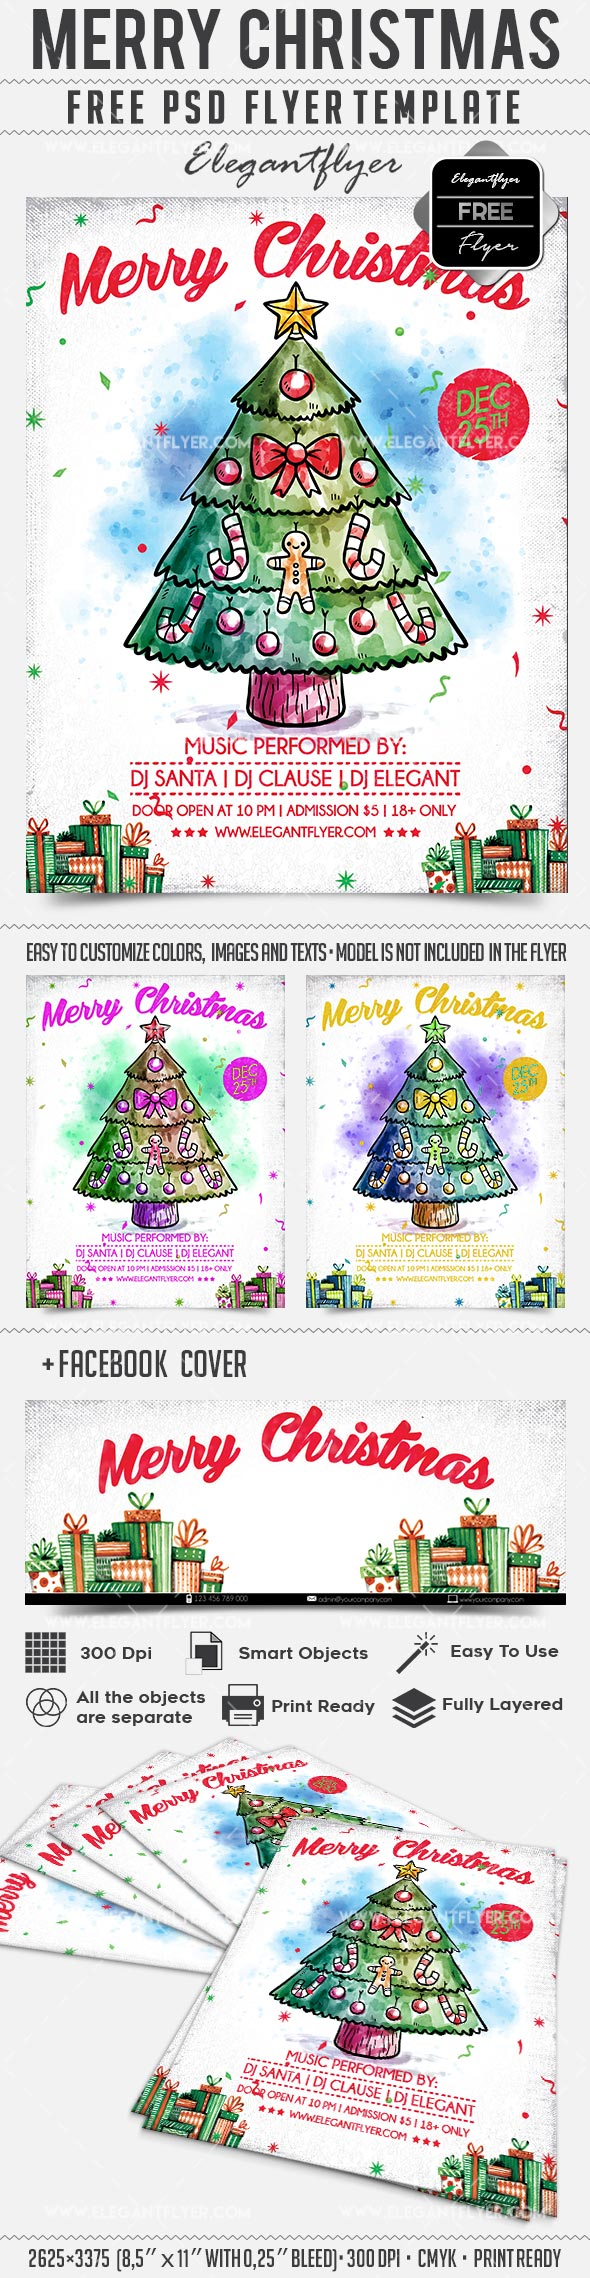 Christmas Tree Flyer Template